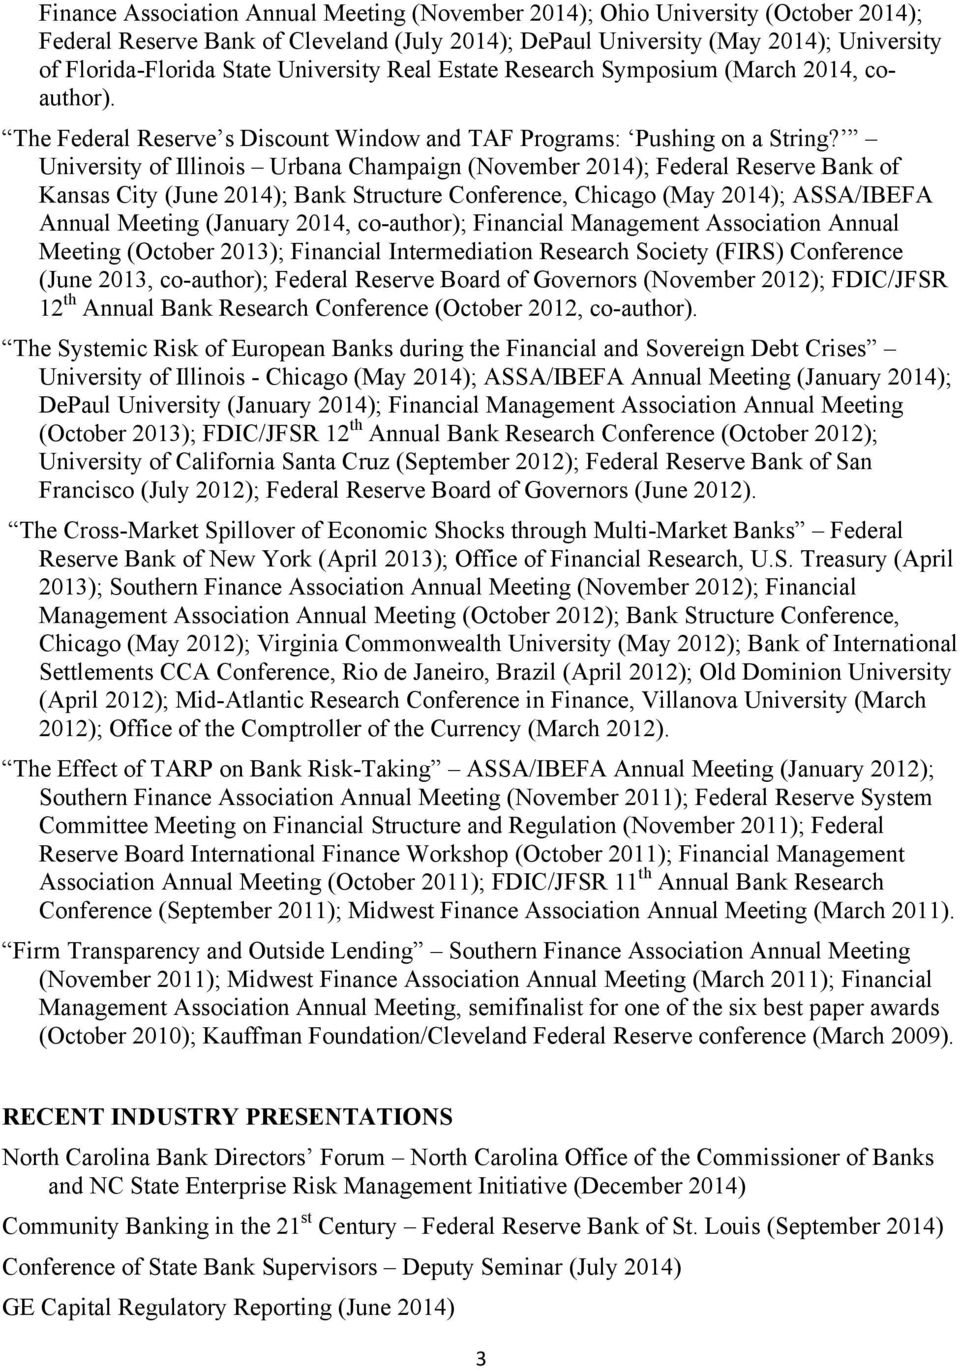 University of Illinois Urbana Champaign (November 2014); Federal Reserve Bank of Kansas City (June 2014); Bank Structure Conference, Chicago (May 2014); ASSA/IBEFA Annual Meeting (January 2014,